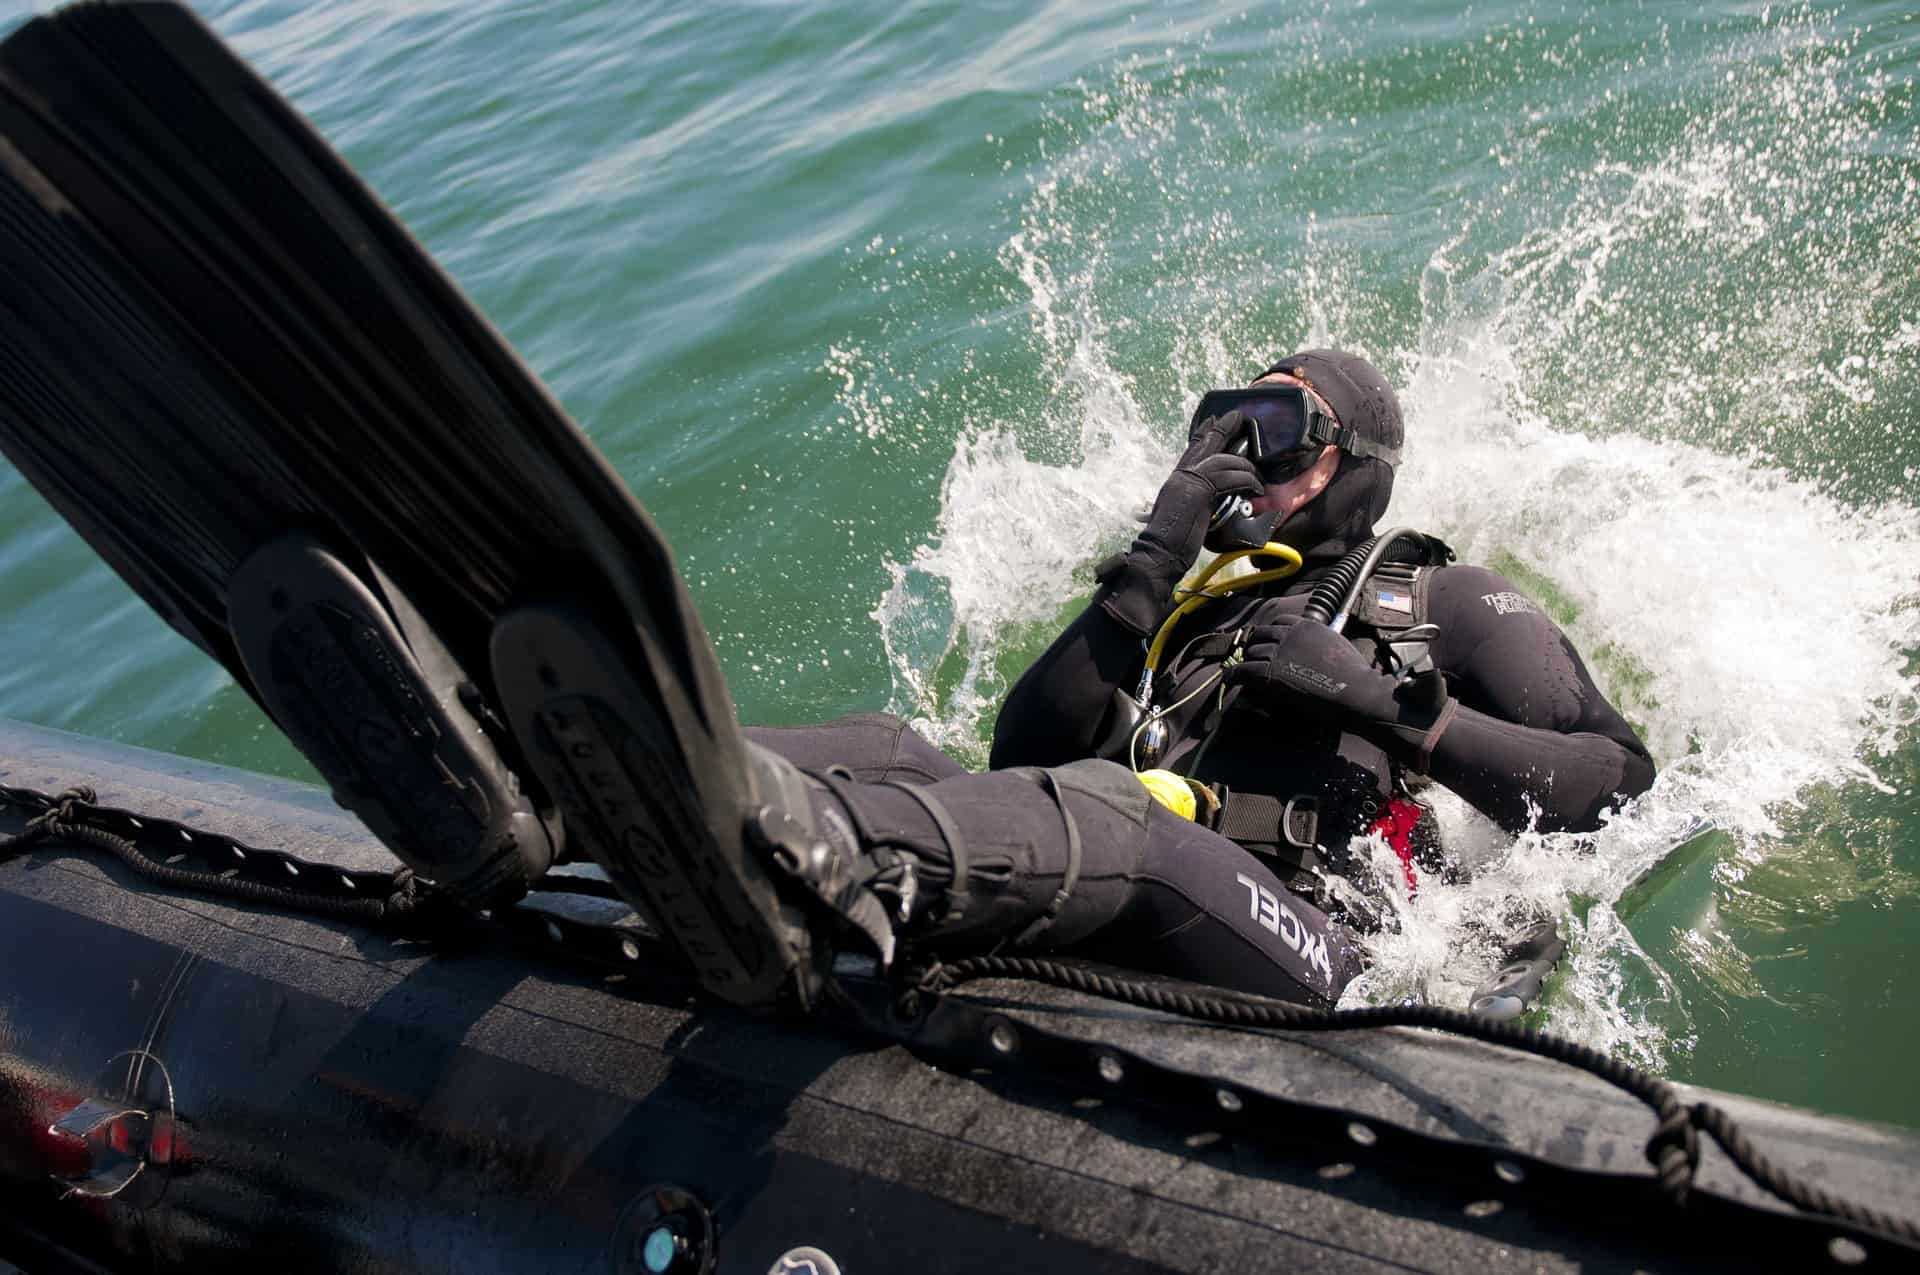 Diver entering the water through a backward role